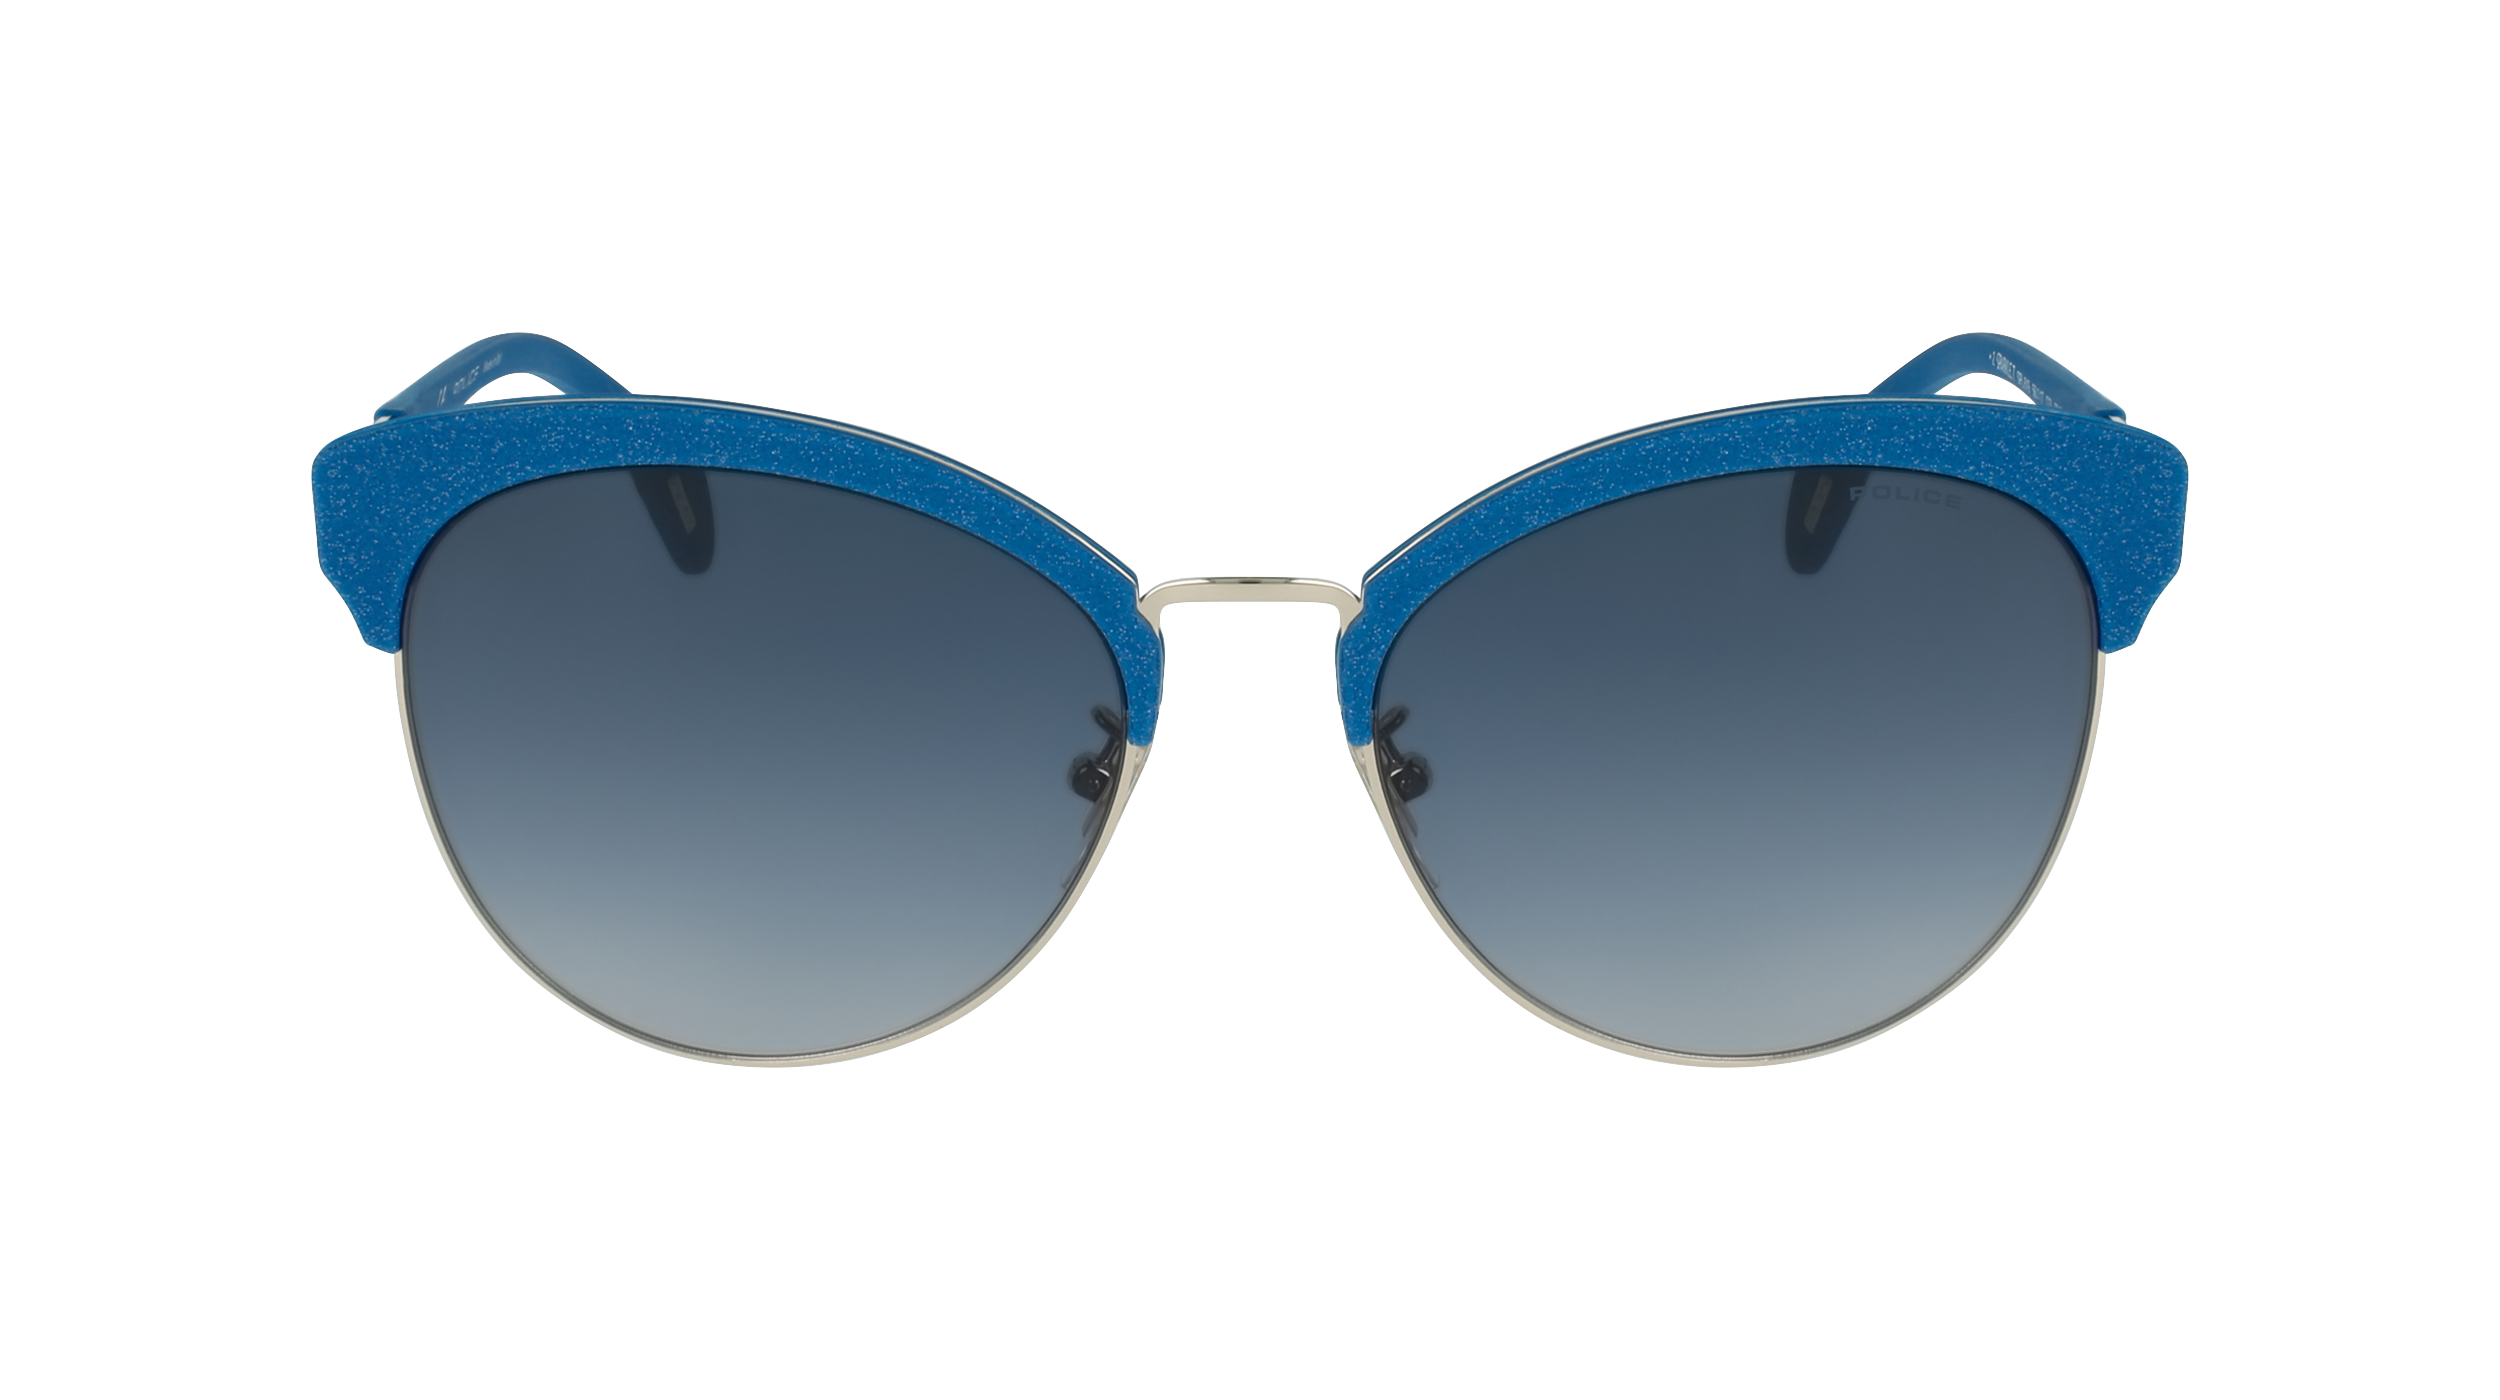 Optic2000 Lunettes Soleil Police